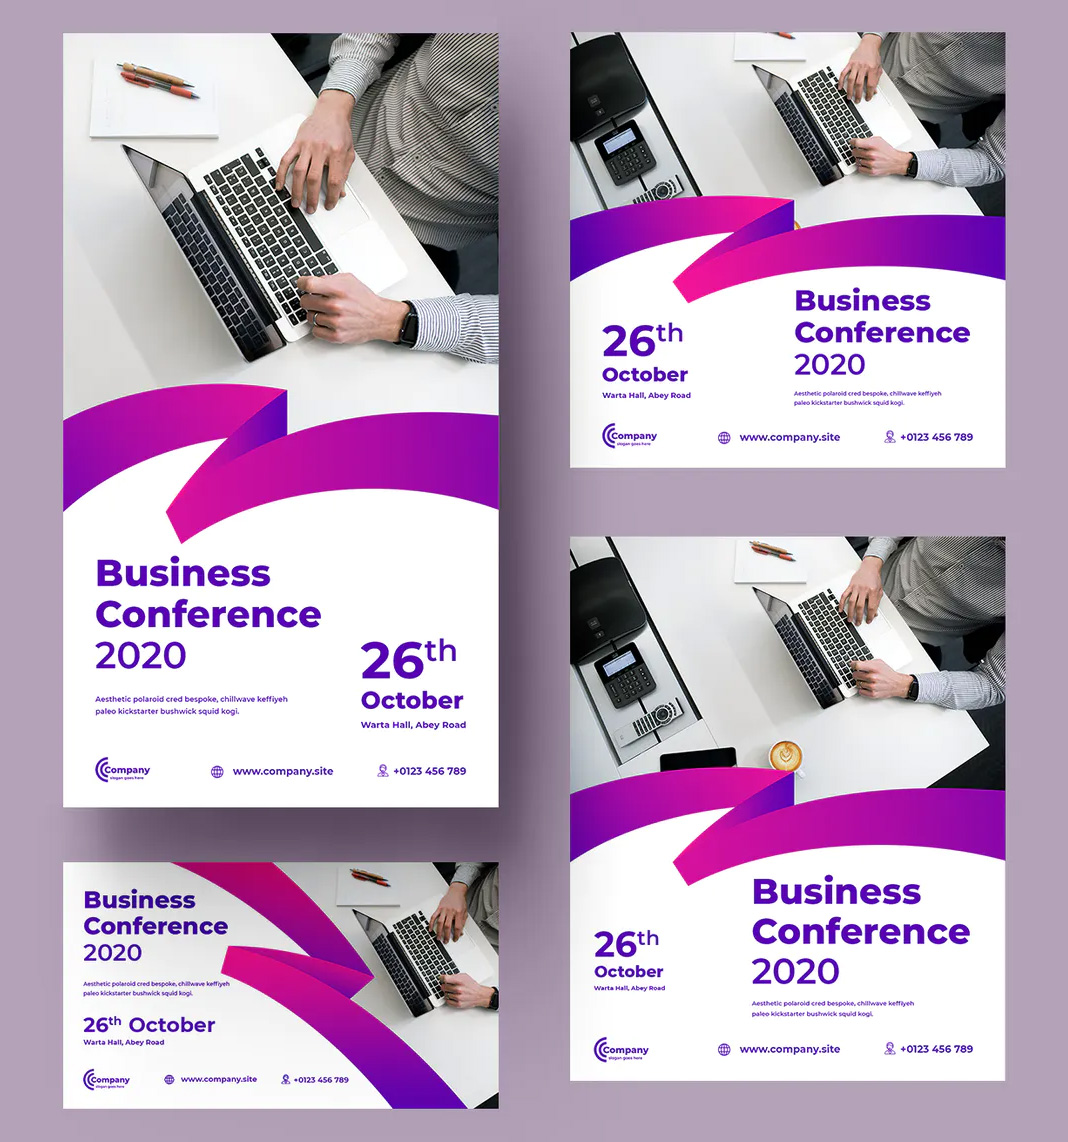 Corporate web banner templates